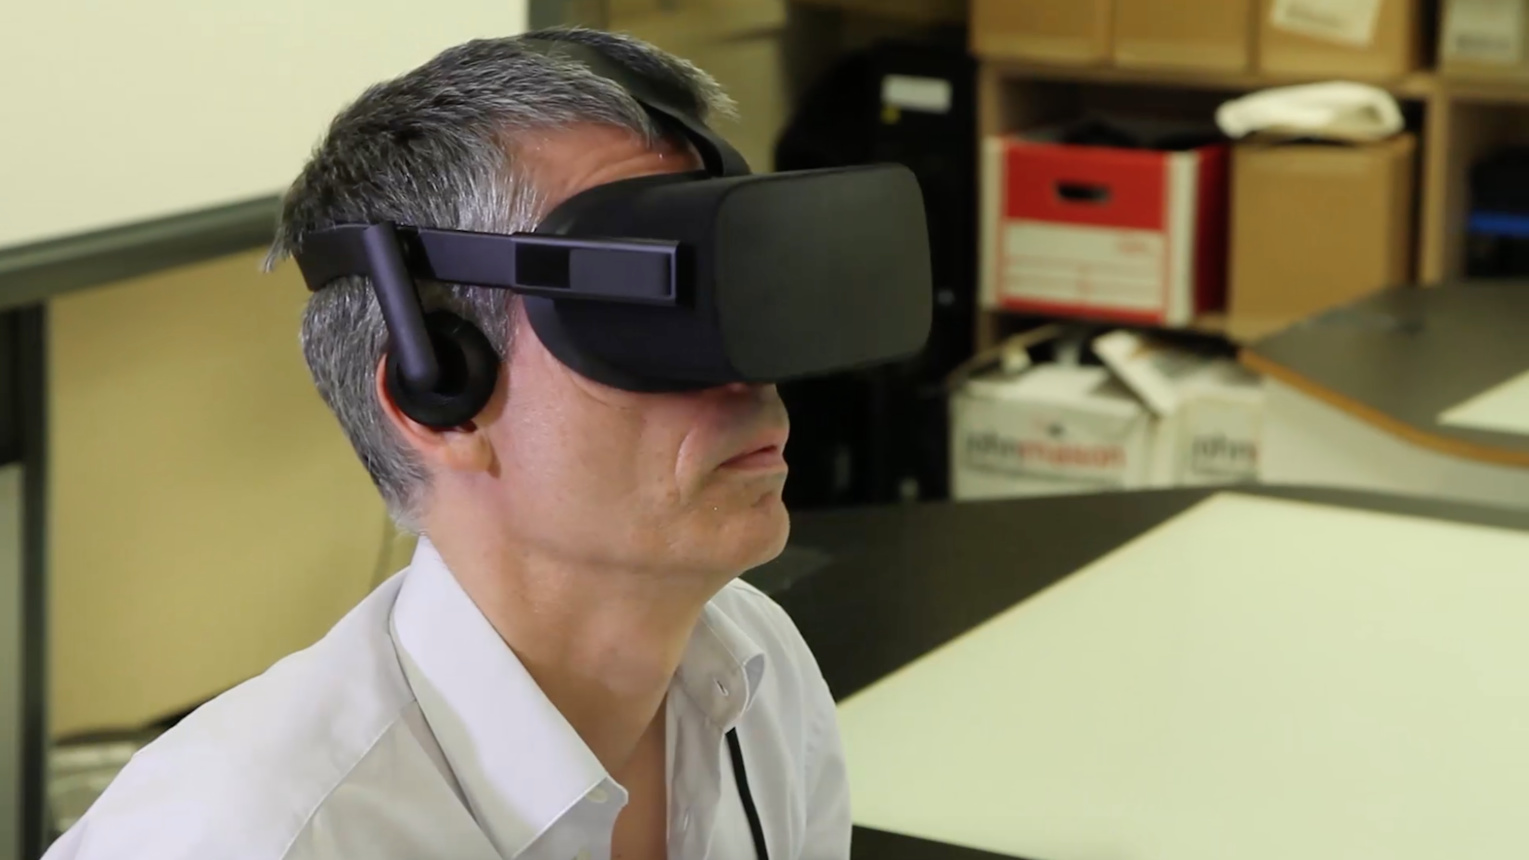 Building Worlds in Virtual Reality: Exploring Careers in Engineering and Technology